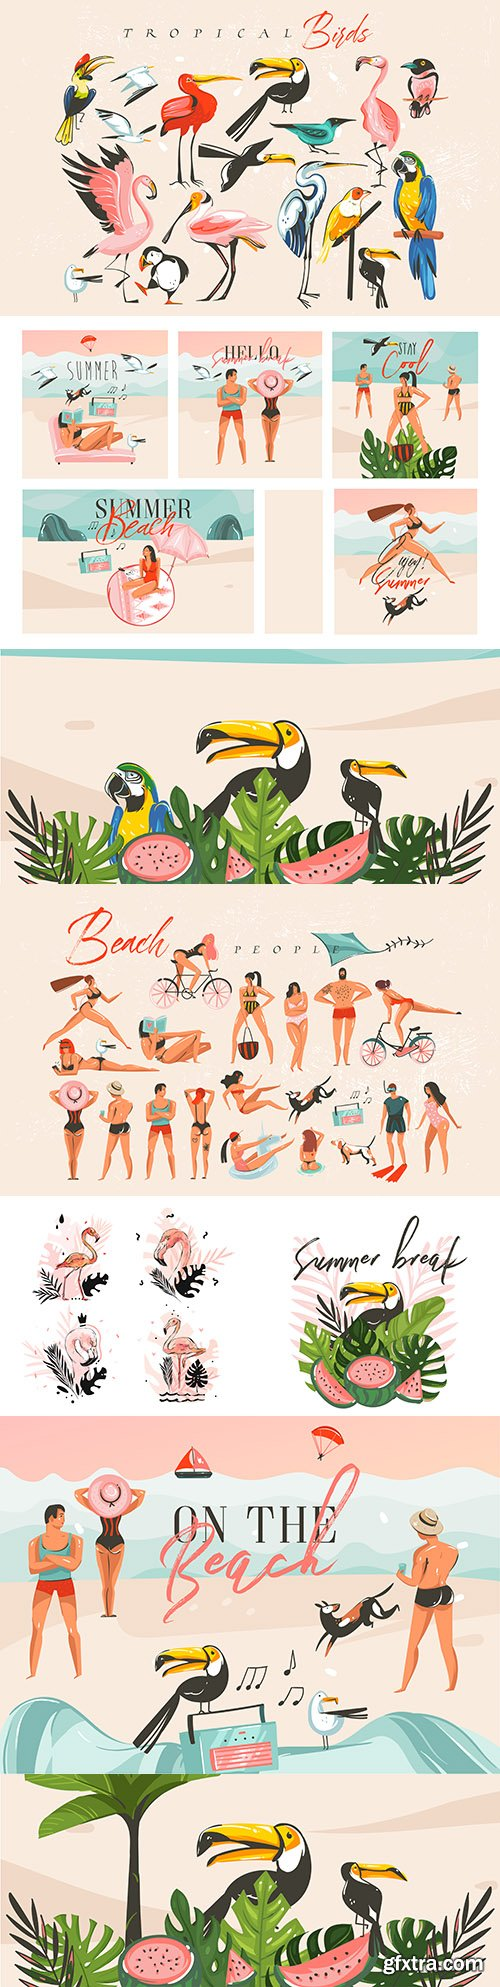 Summer beach, people on holiday and exotic birds